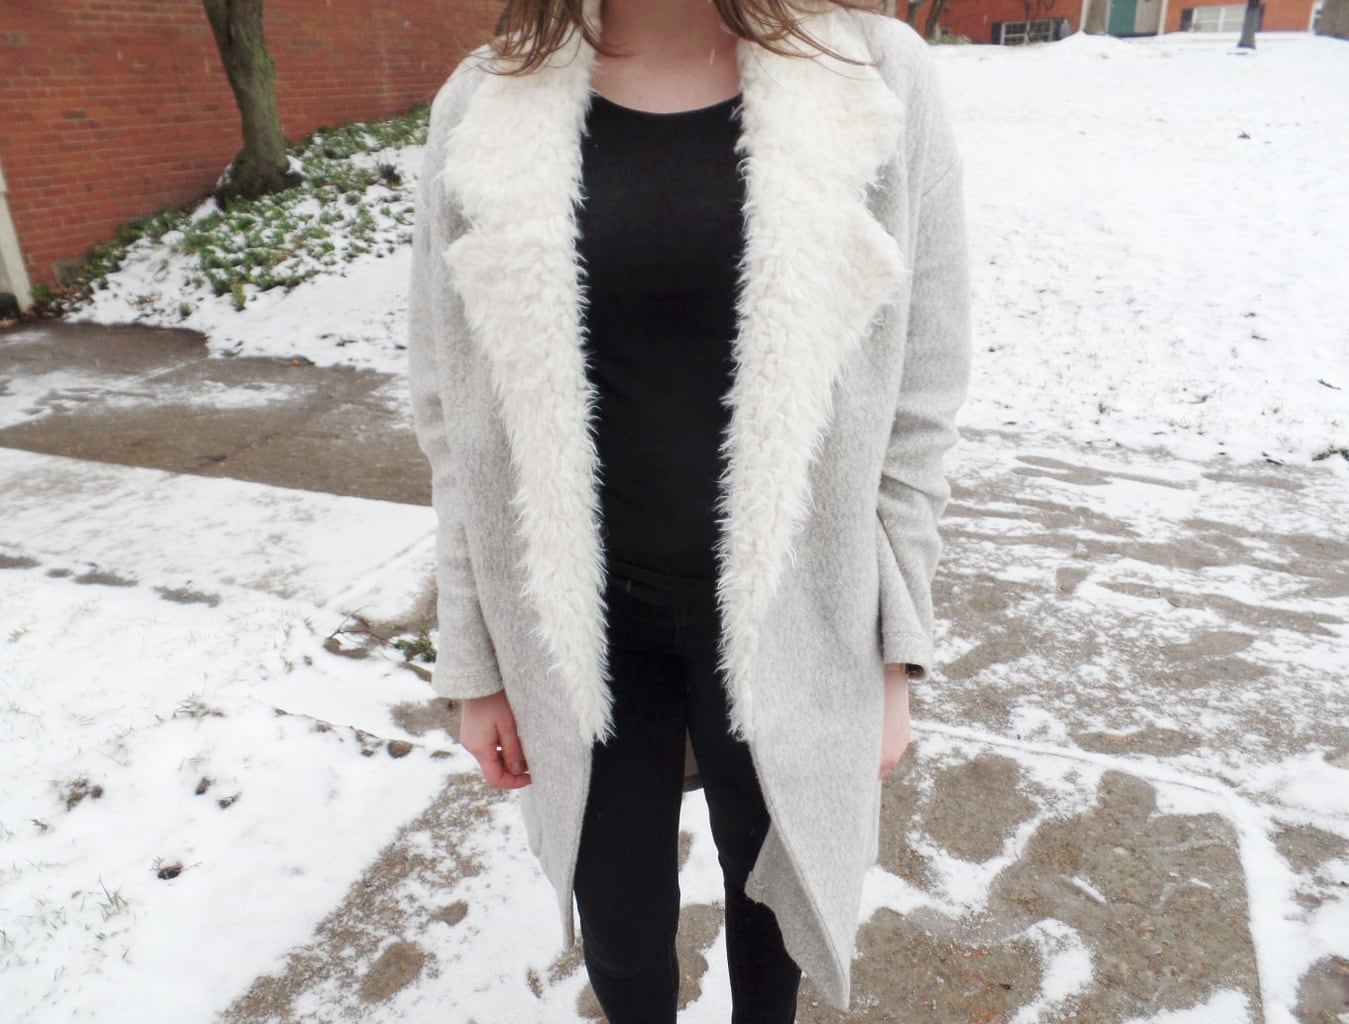 Mercyhurst University student Chloe wears a light grey longline coat with white fur lapels with her all black outfit.